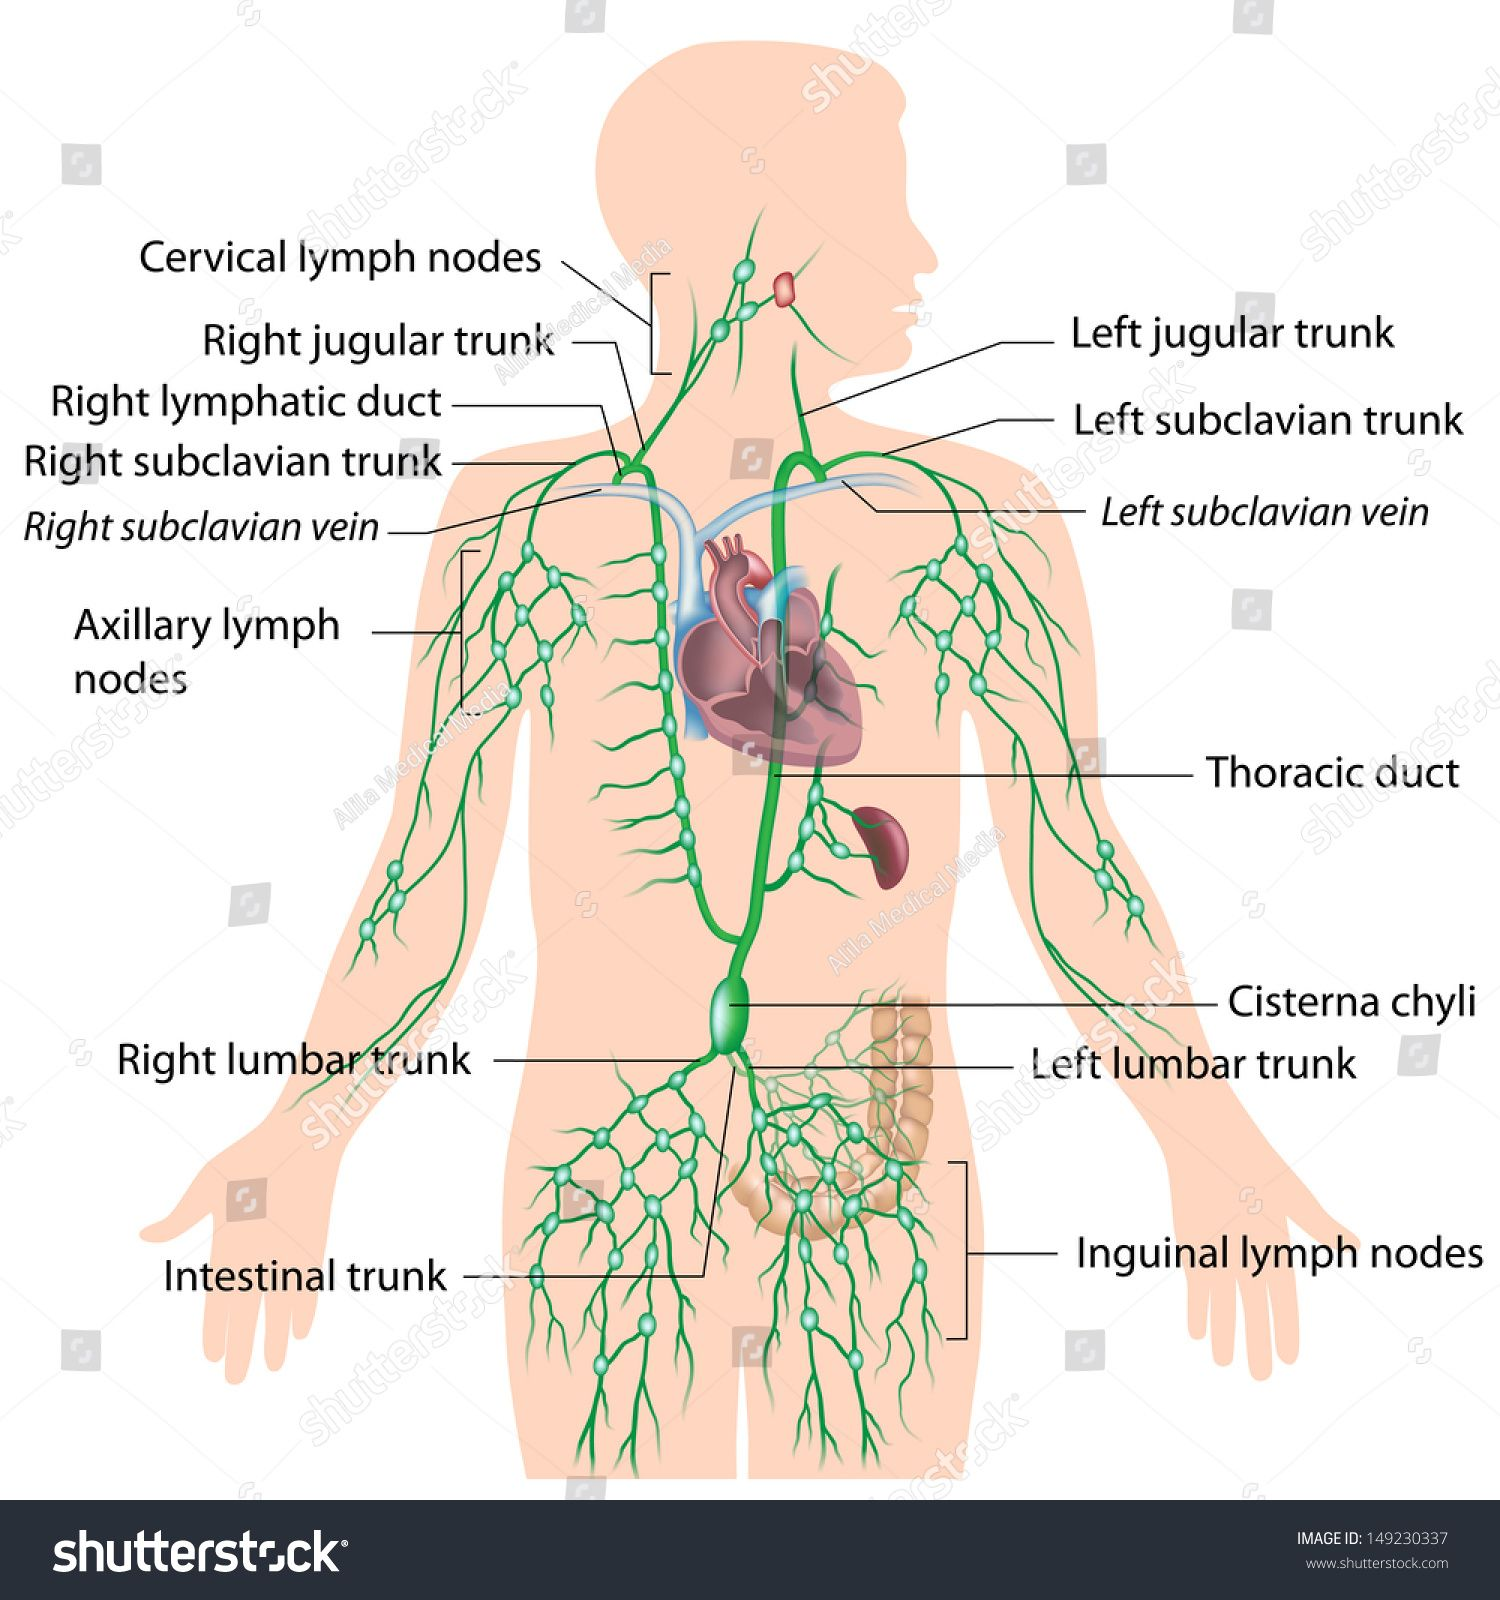 Image Result For Human Male Lymphatic System Diagram